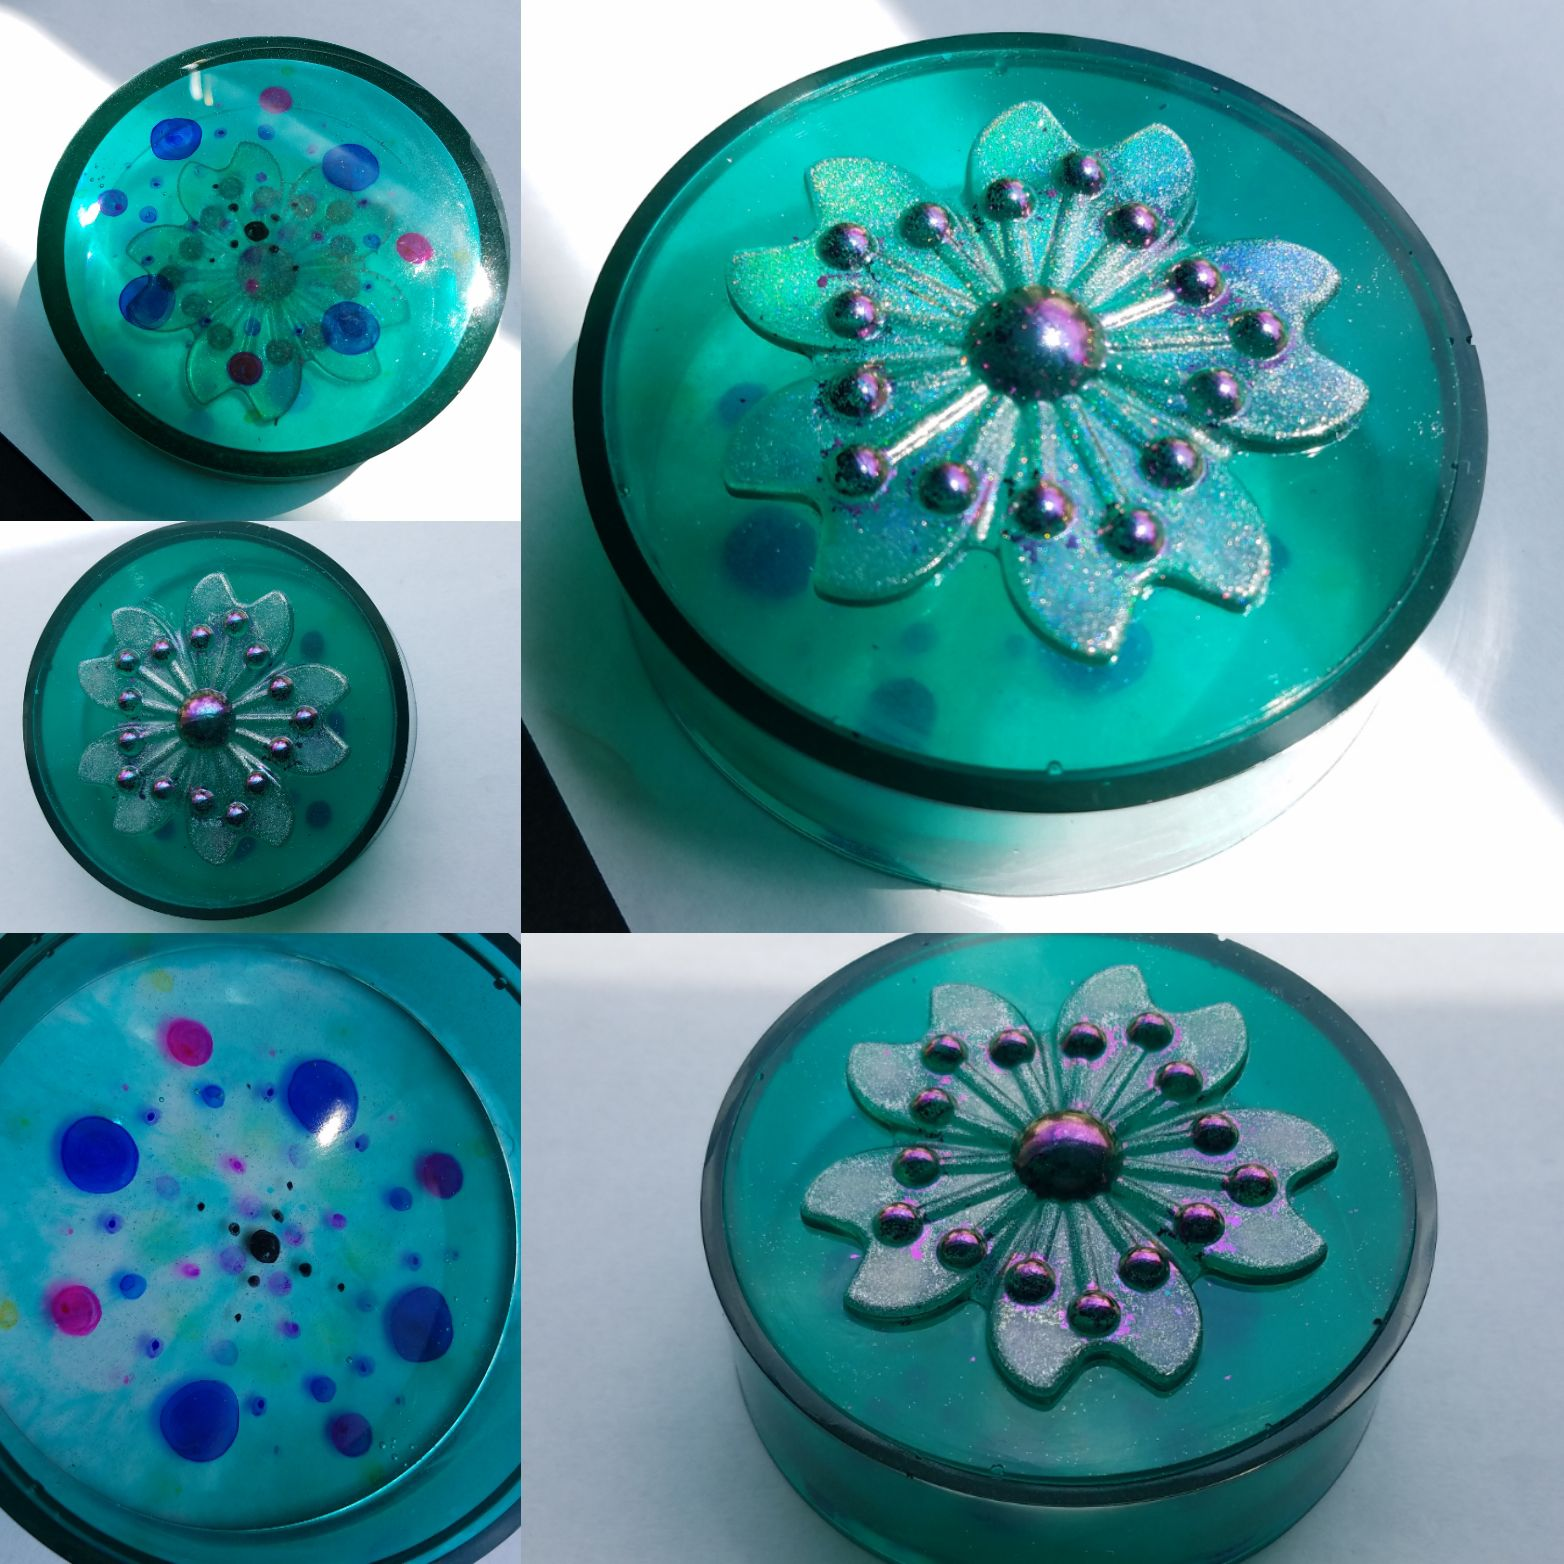 Teal resin container with flower